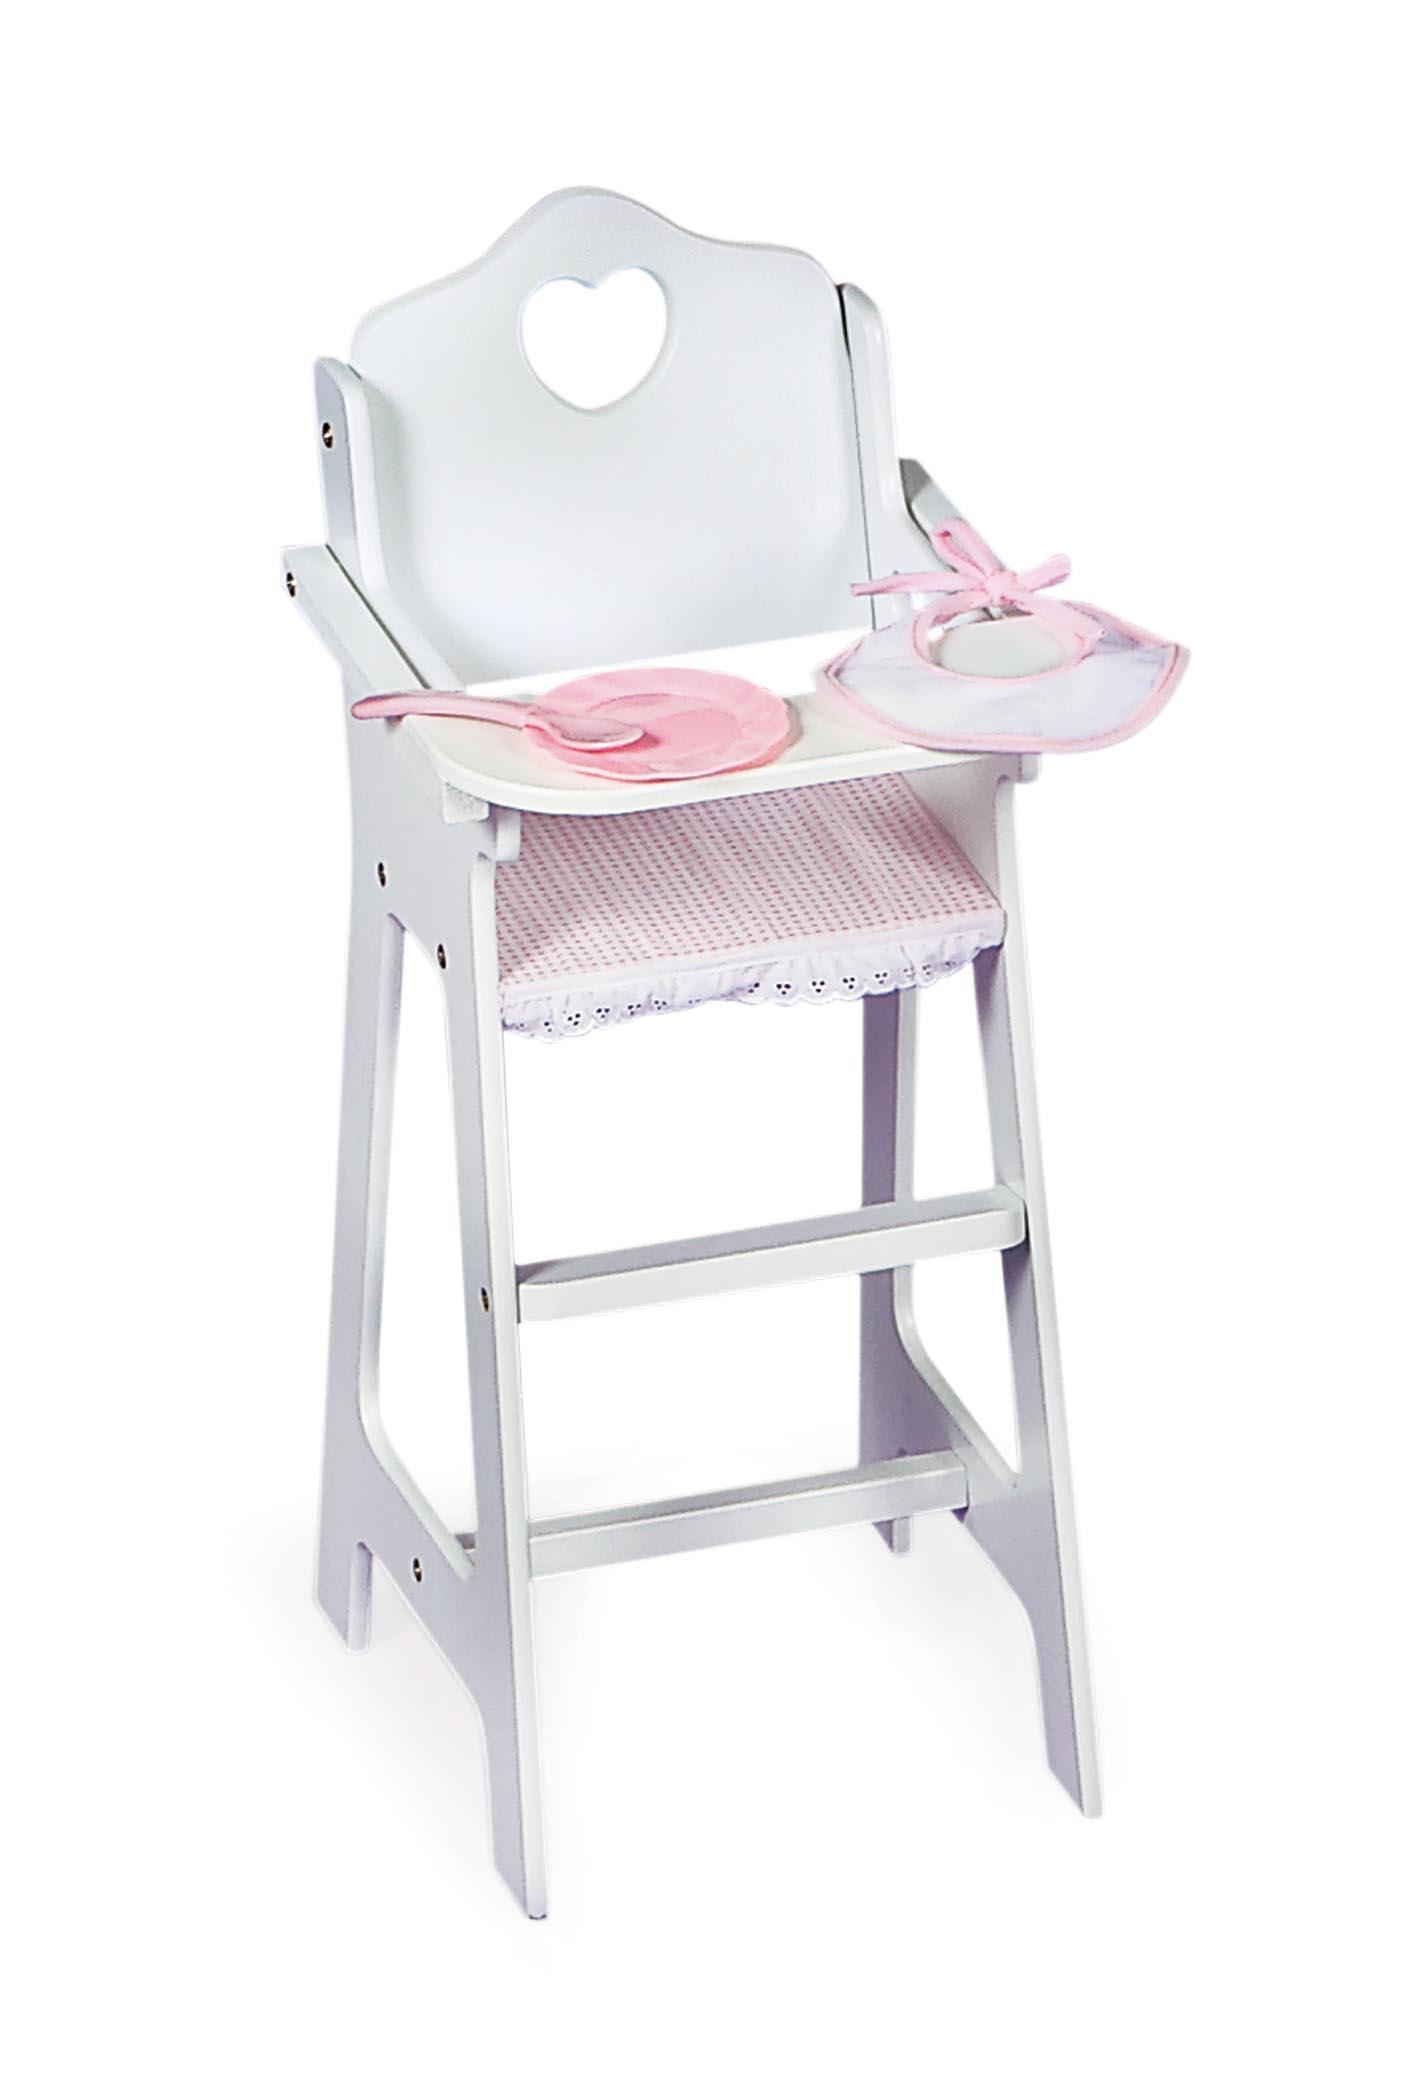 Baby Doll High Chair